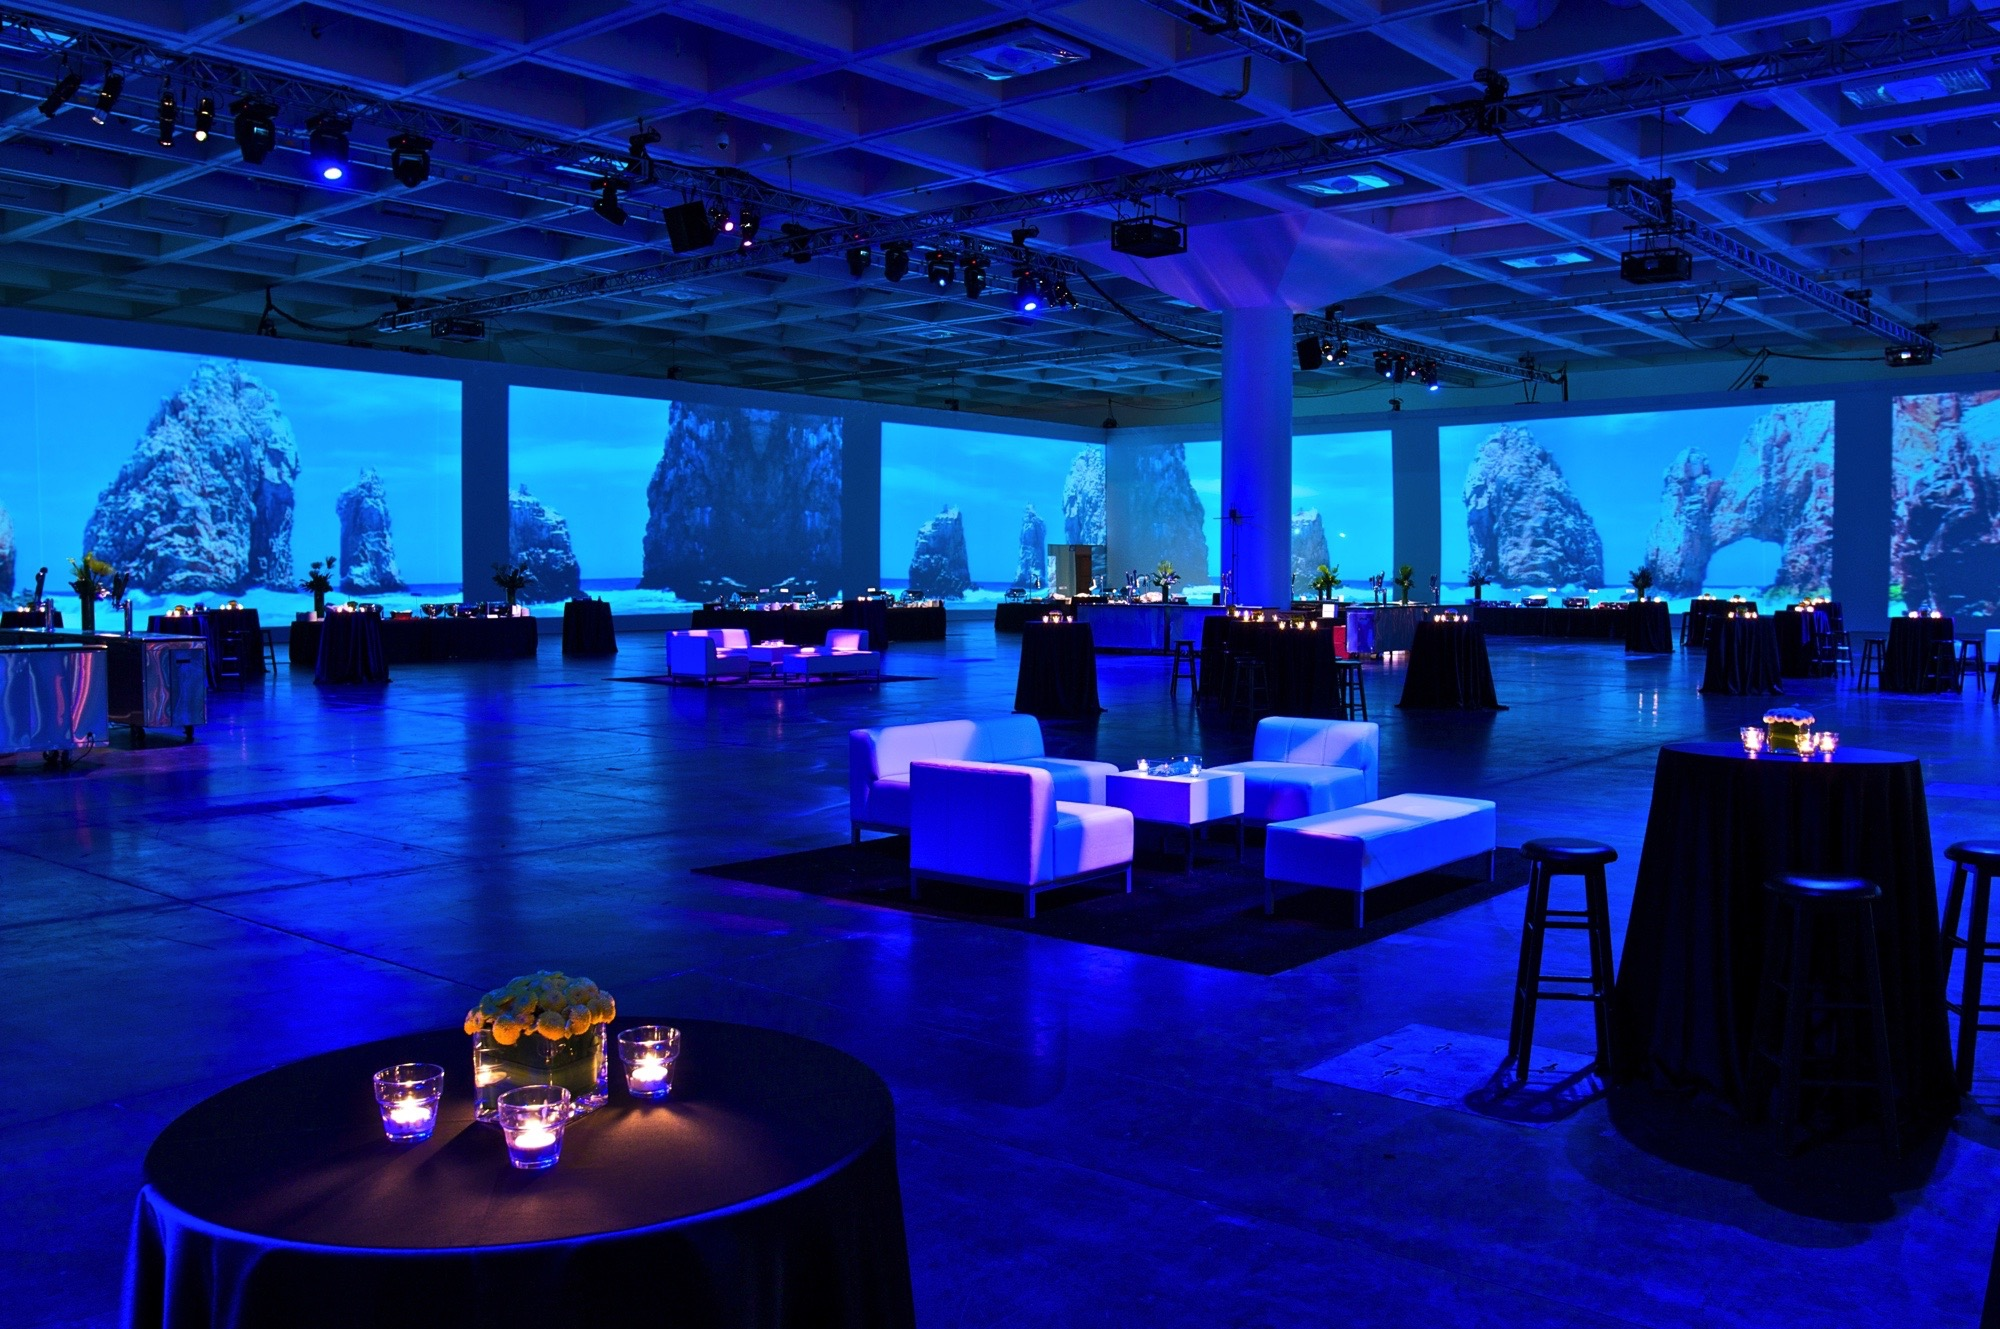 Cisco / George P Johnson Welcome Reception executive production floor to ceiling a/v projections of the world with lounge 3